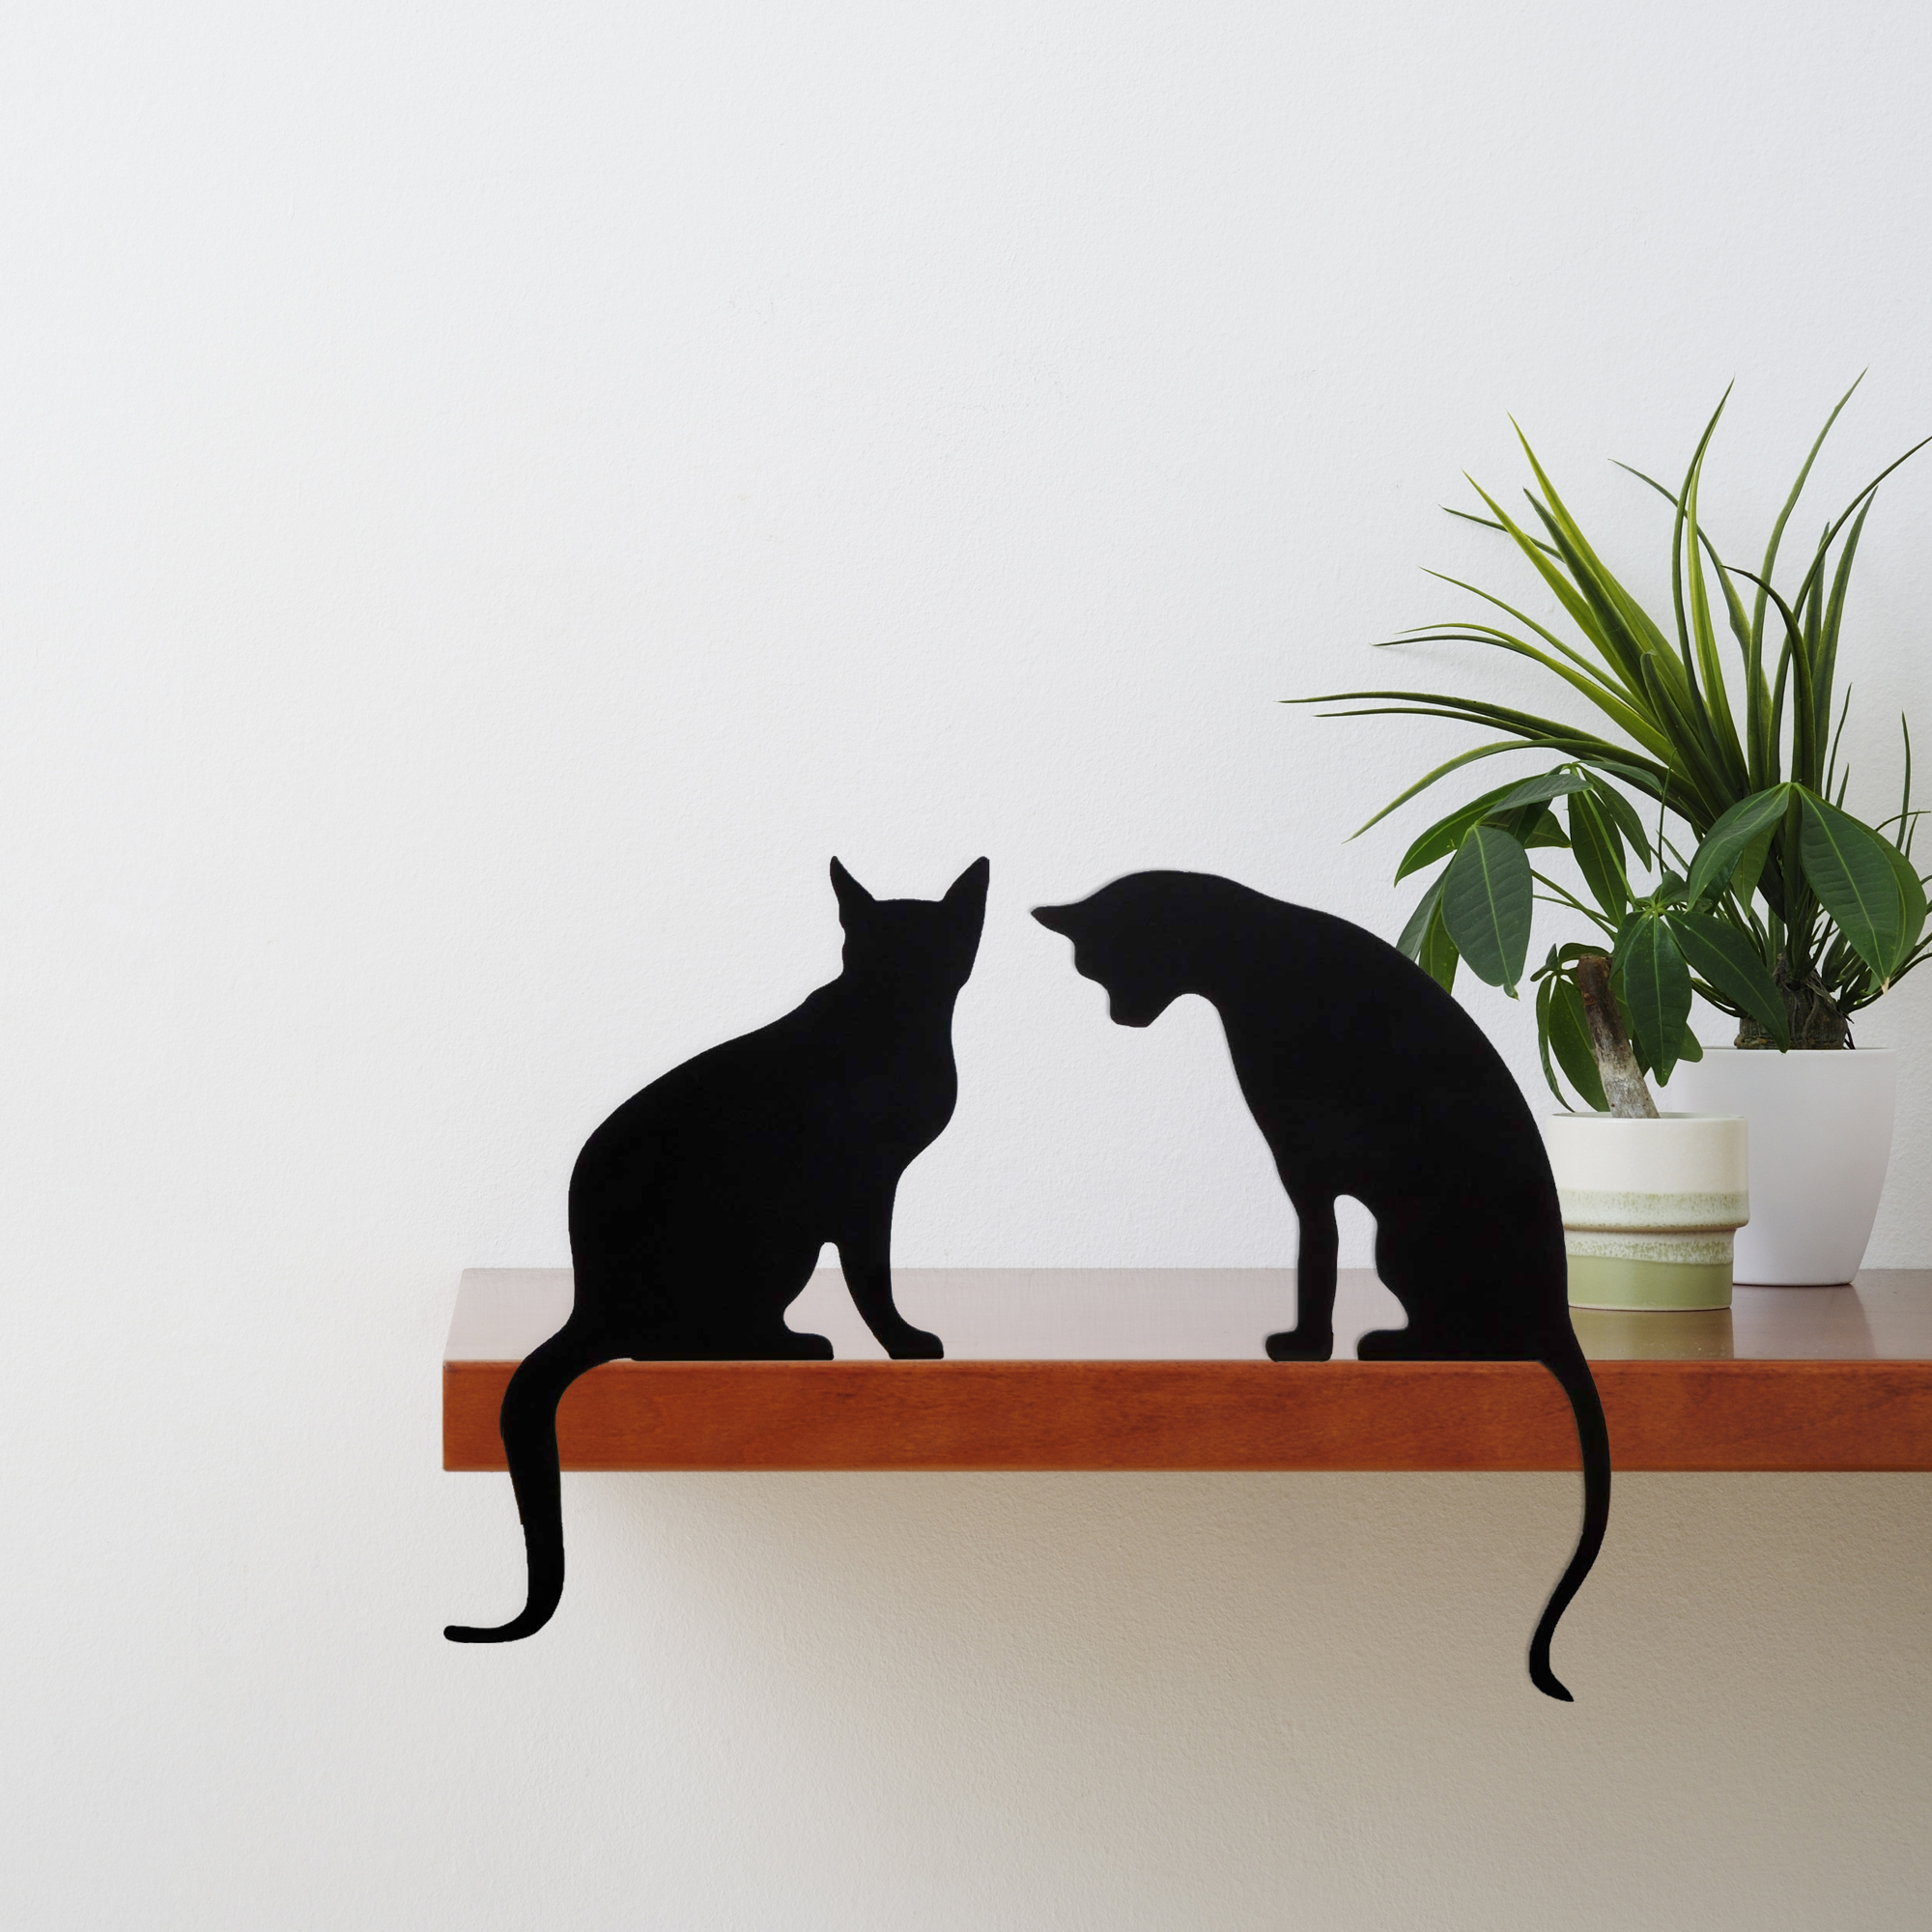 Duo Meow - Two Decorative Cat Silhouettes